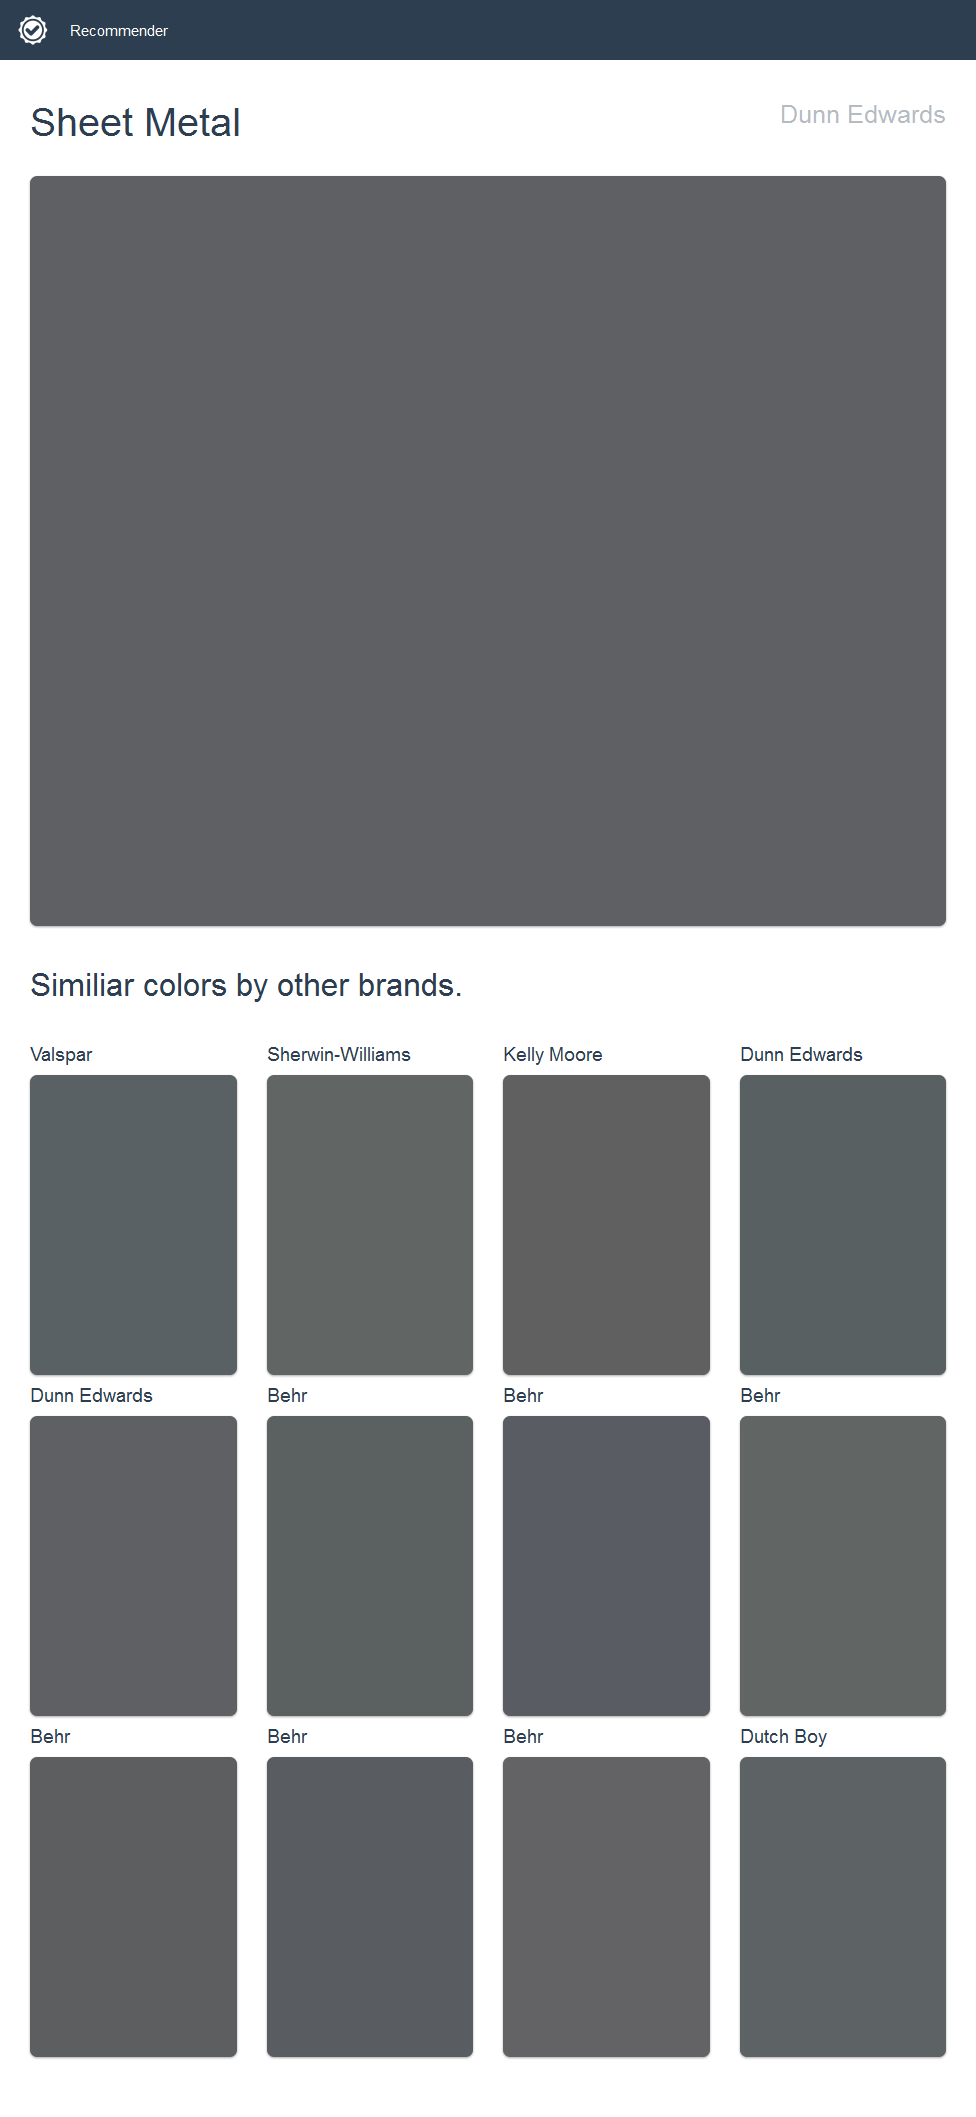 Sheet Metal, Dunn Edwards. Click the image to see similiar colors by ...